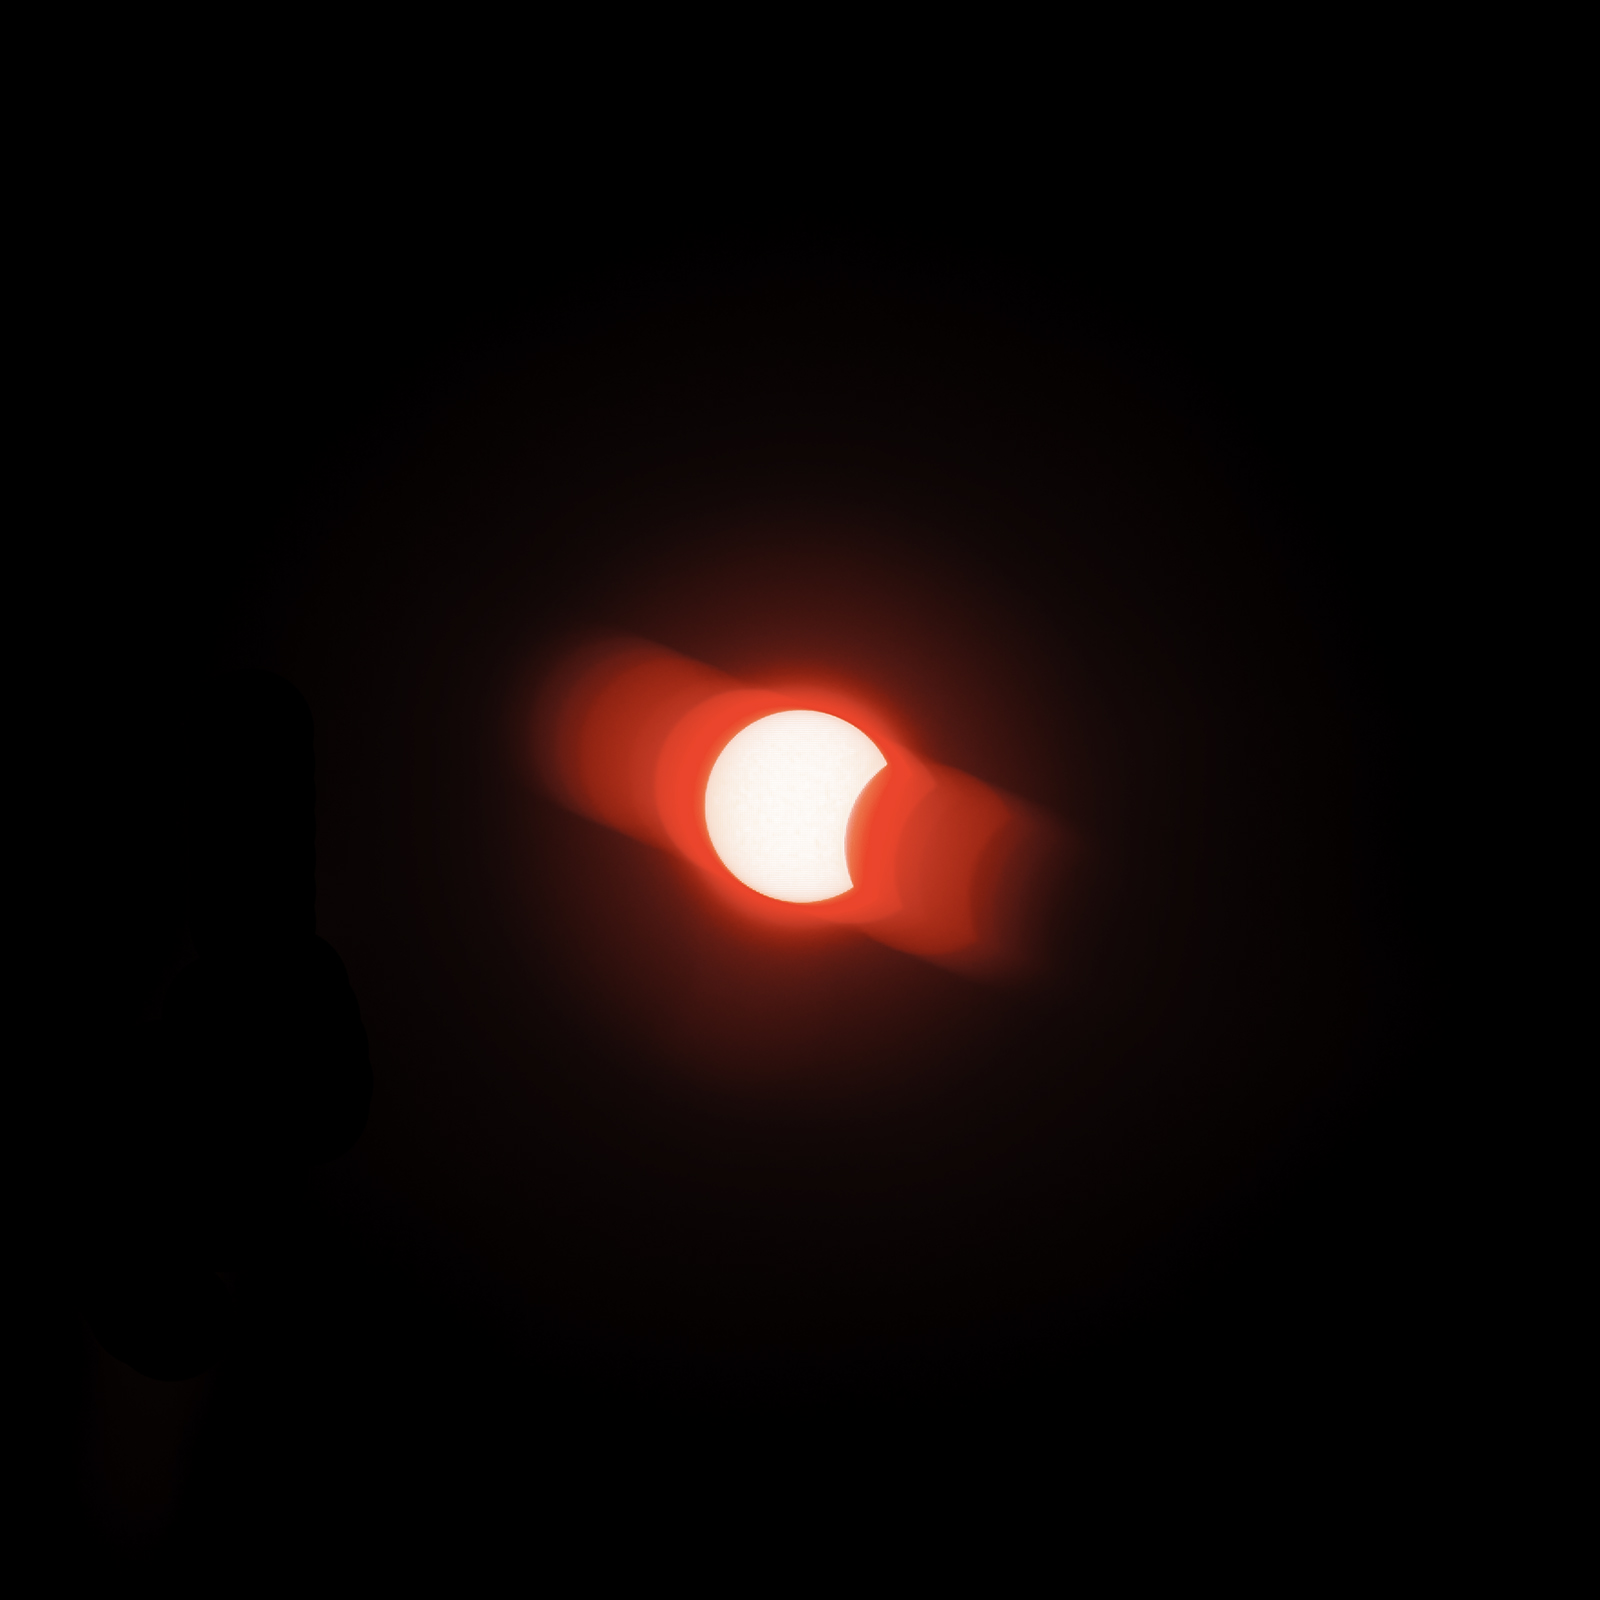 Eclipse065-Edit.jpg